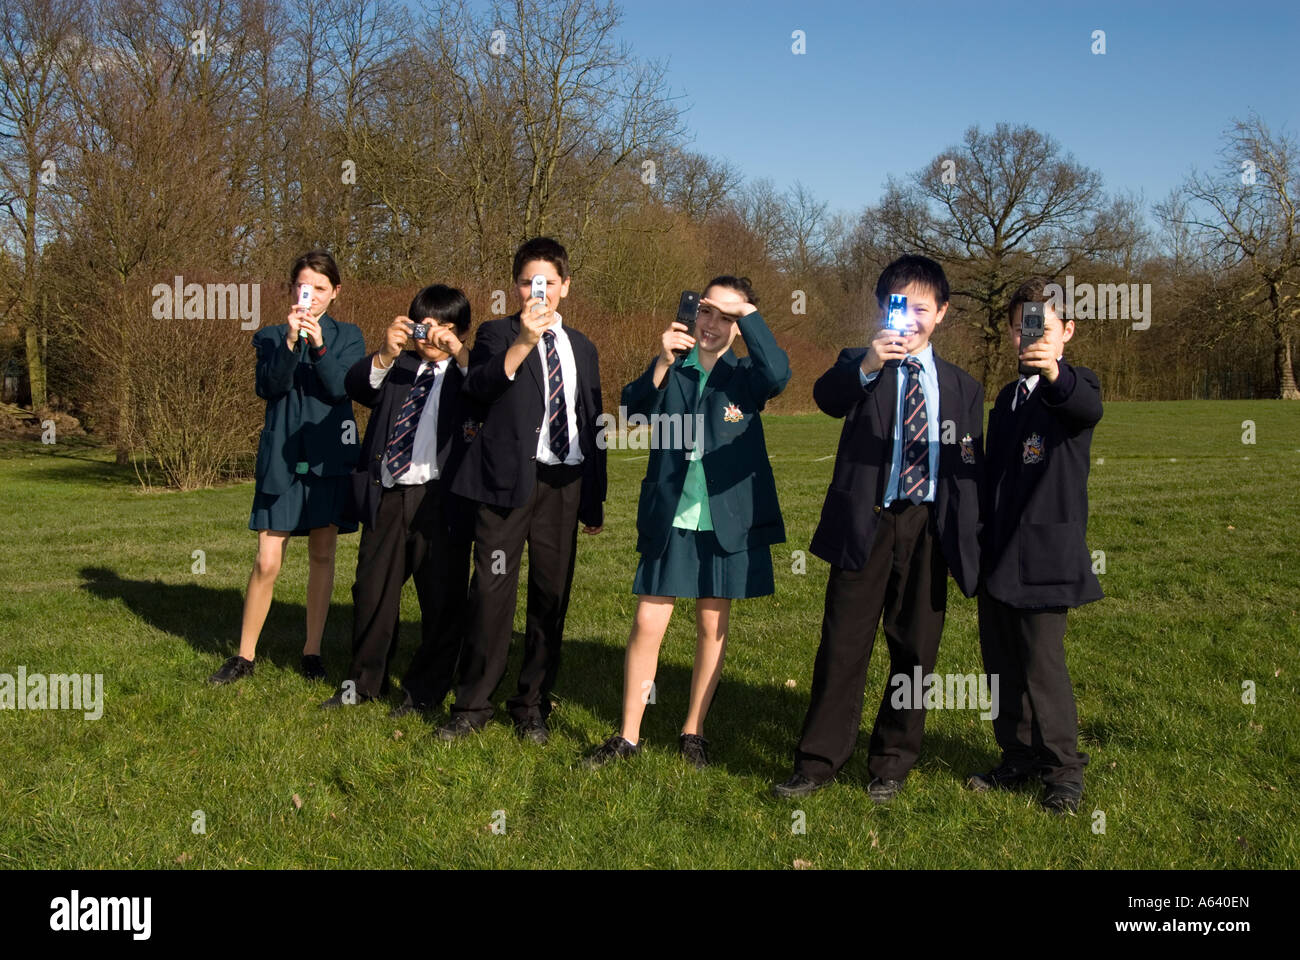 Group of school children in uniform taking photos with their mobile phones, England UK - Stock Image